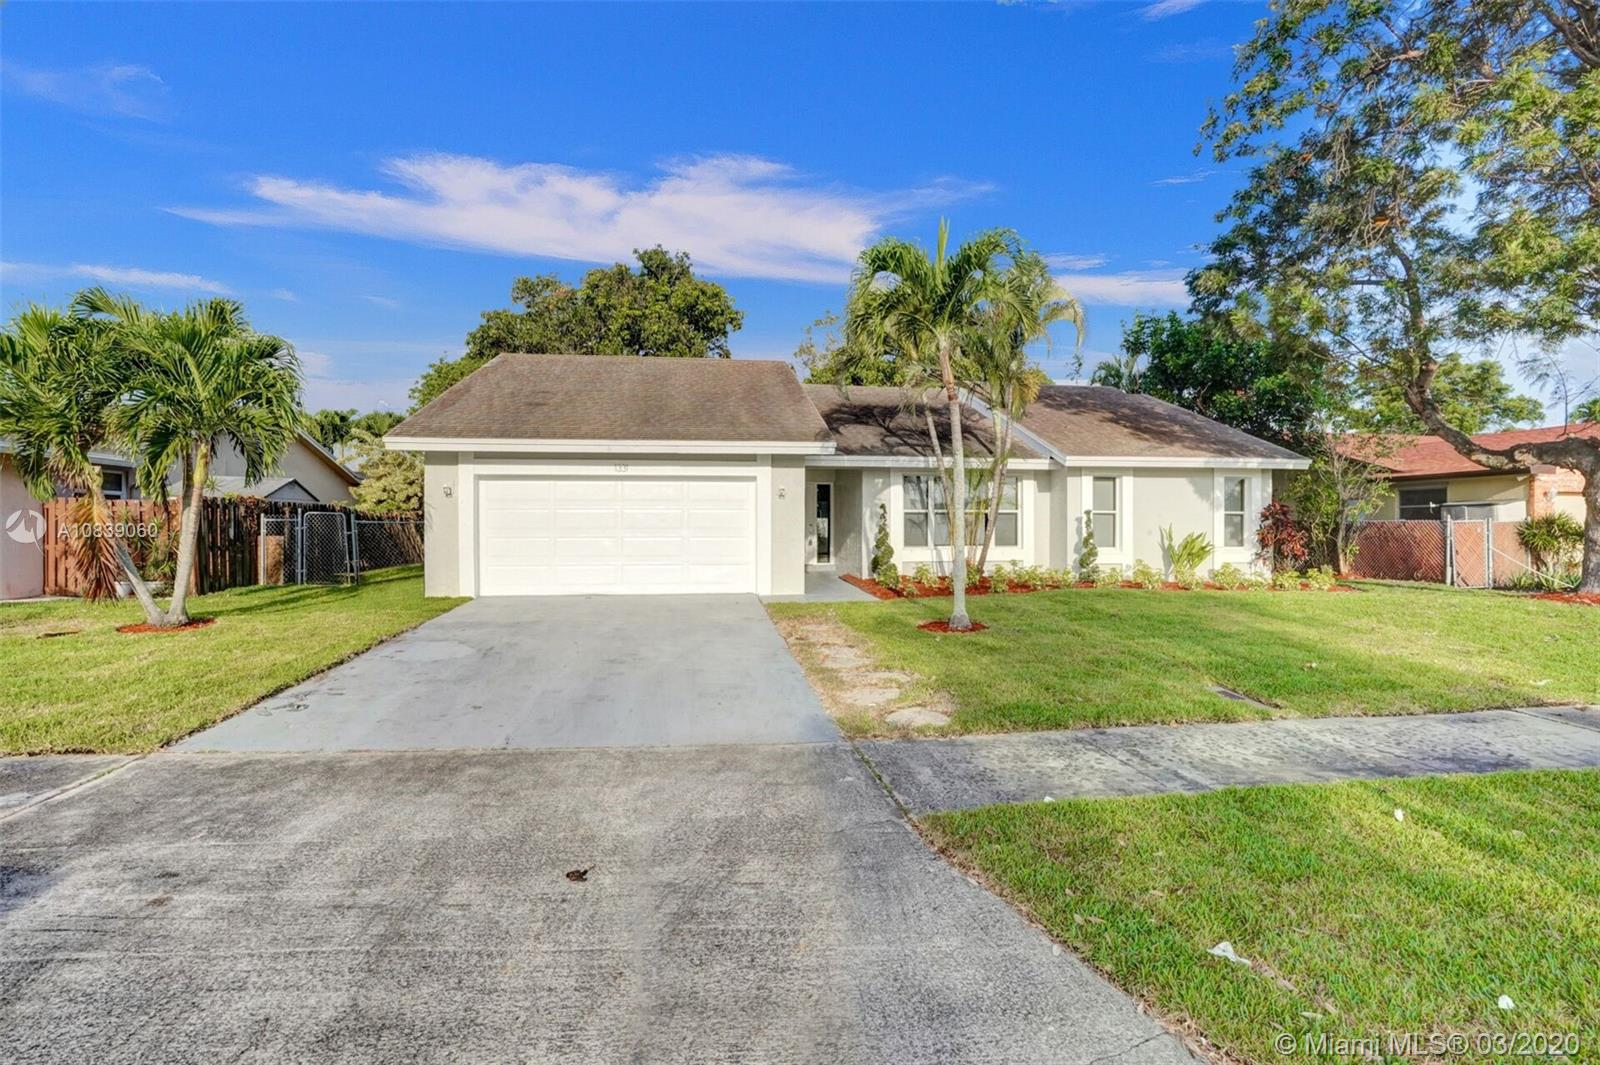 1331 SW 27th Ave, Deerfield Beach, Florida 33442, 3 Bedrooms Bedrooms, ,2 BathroomsBathrooms,Residential,For Sale,1331 SW 27th Ave,A10839060